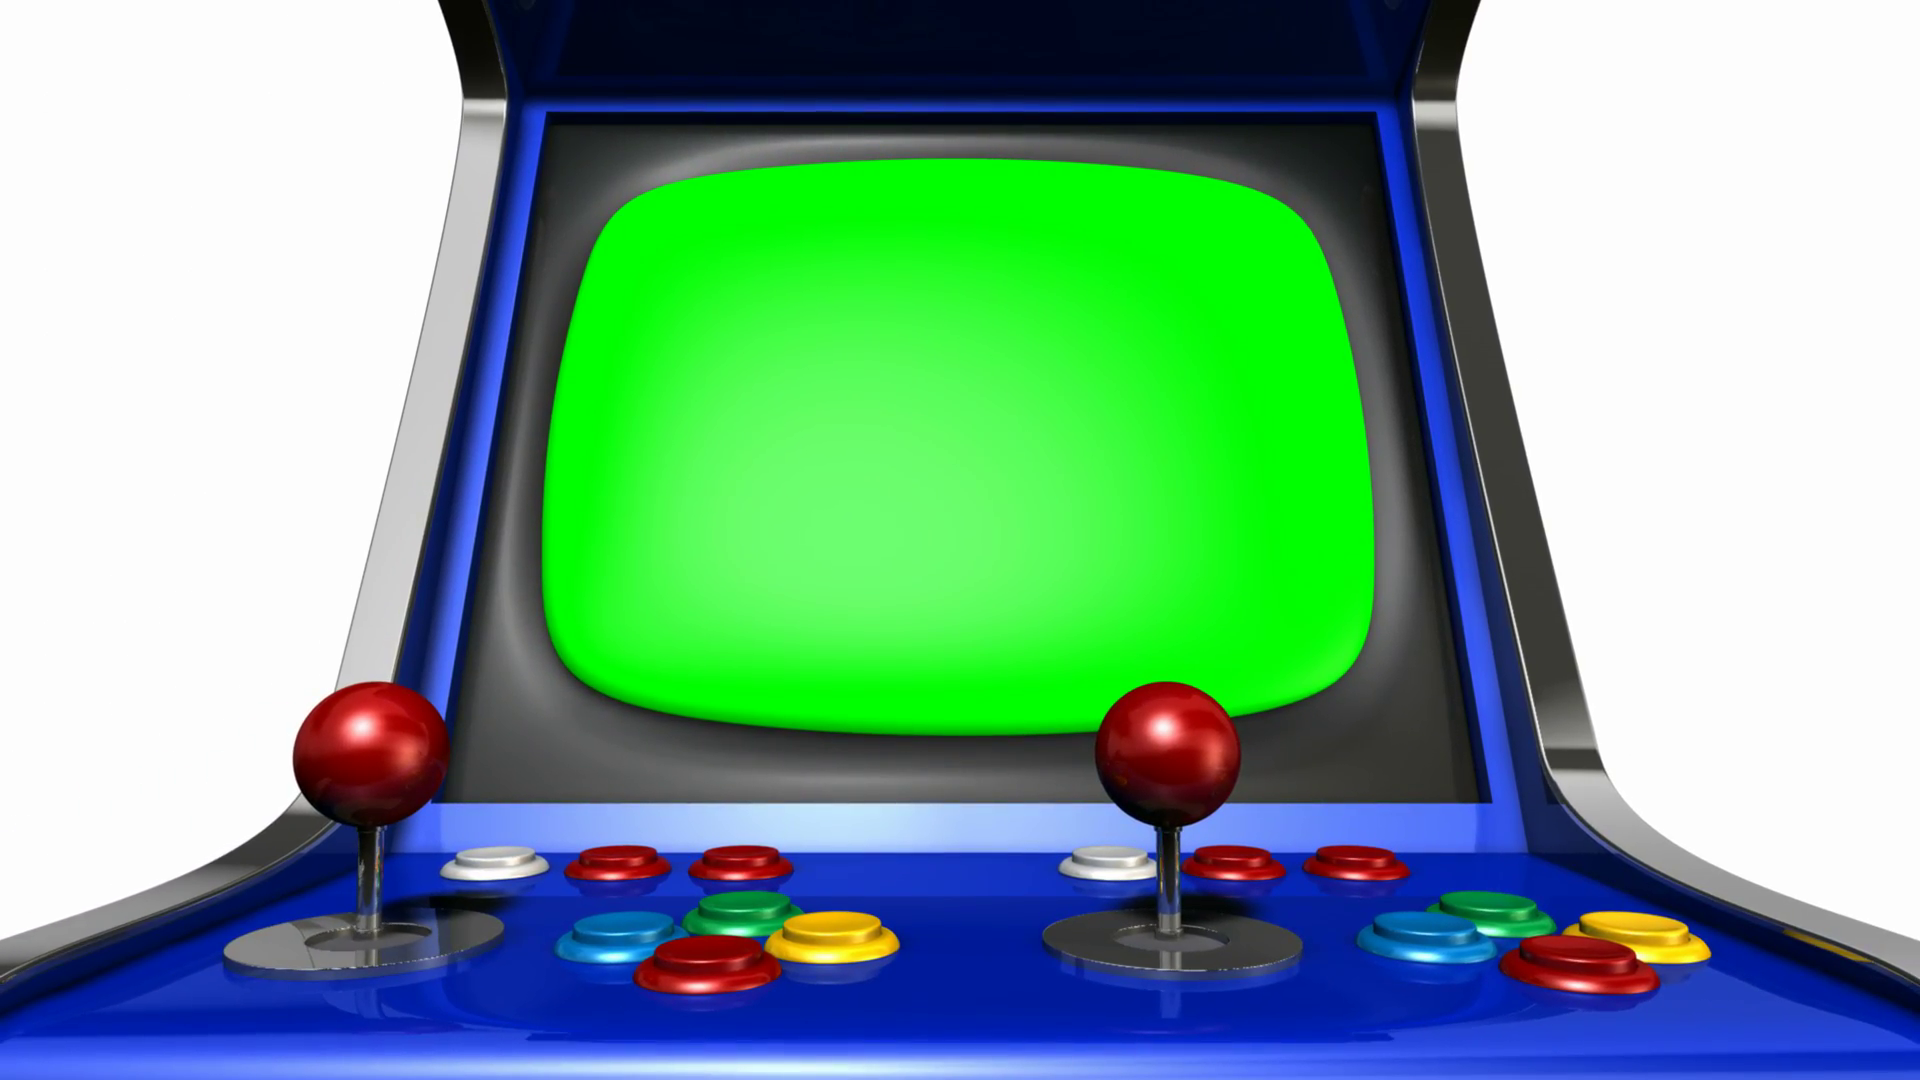 Some One Playing Video Game Png On Screen - A pan out from a vintage unbranded arcade game with a joystick and ...